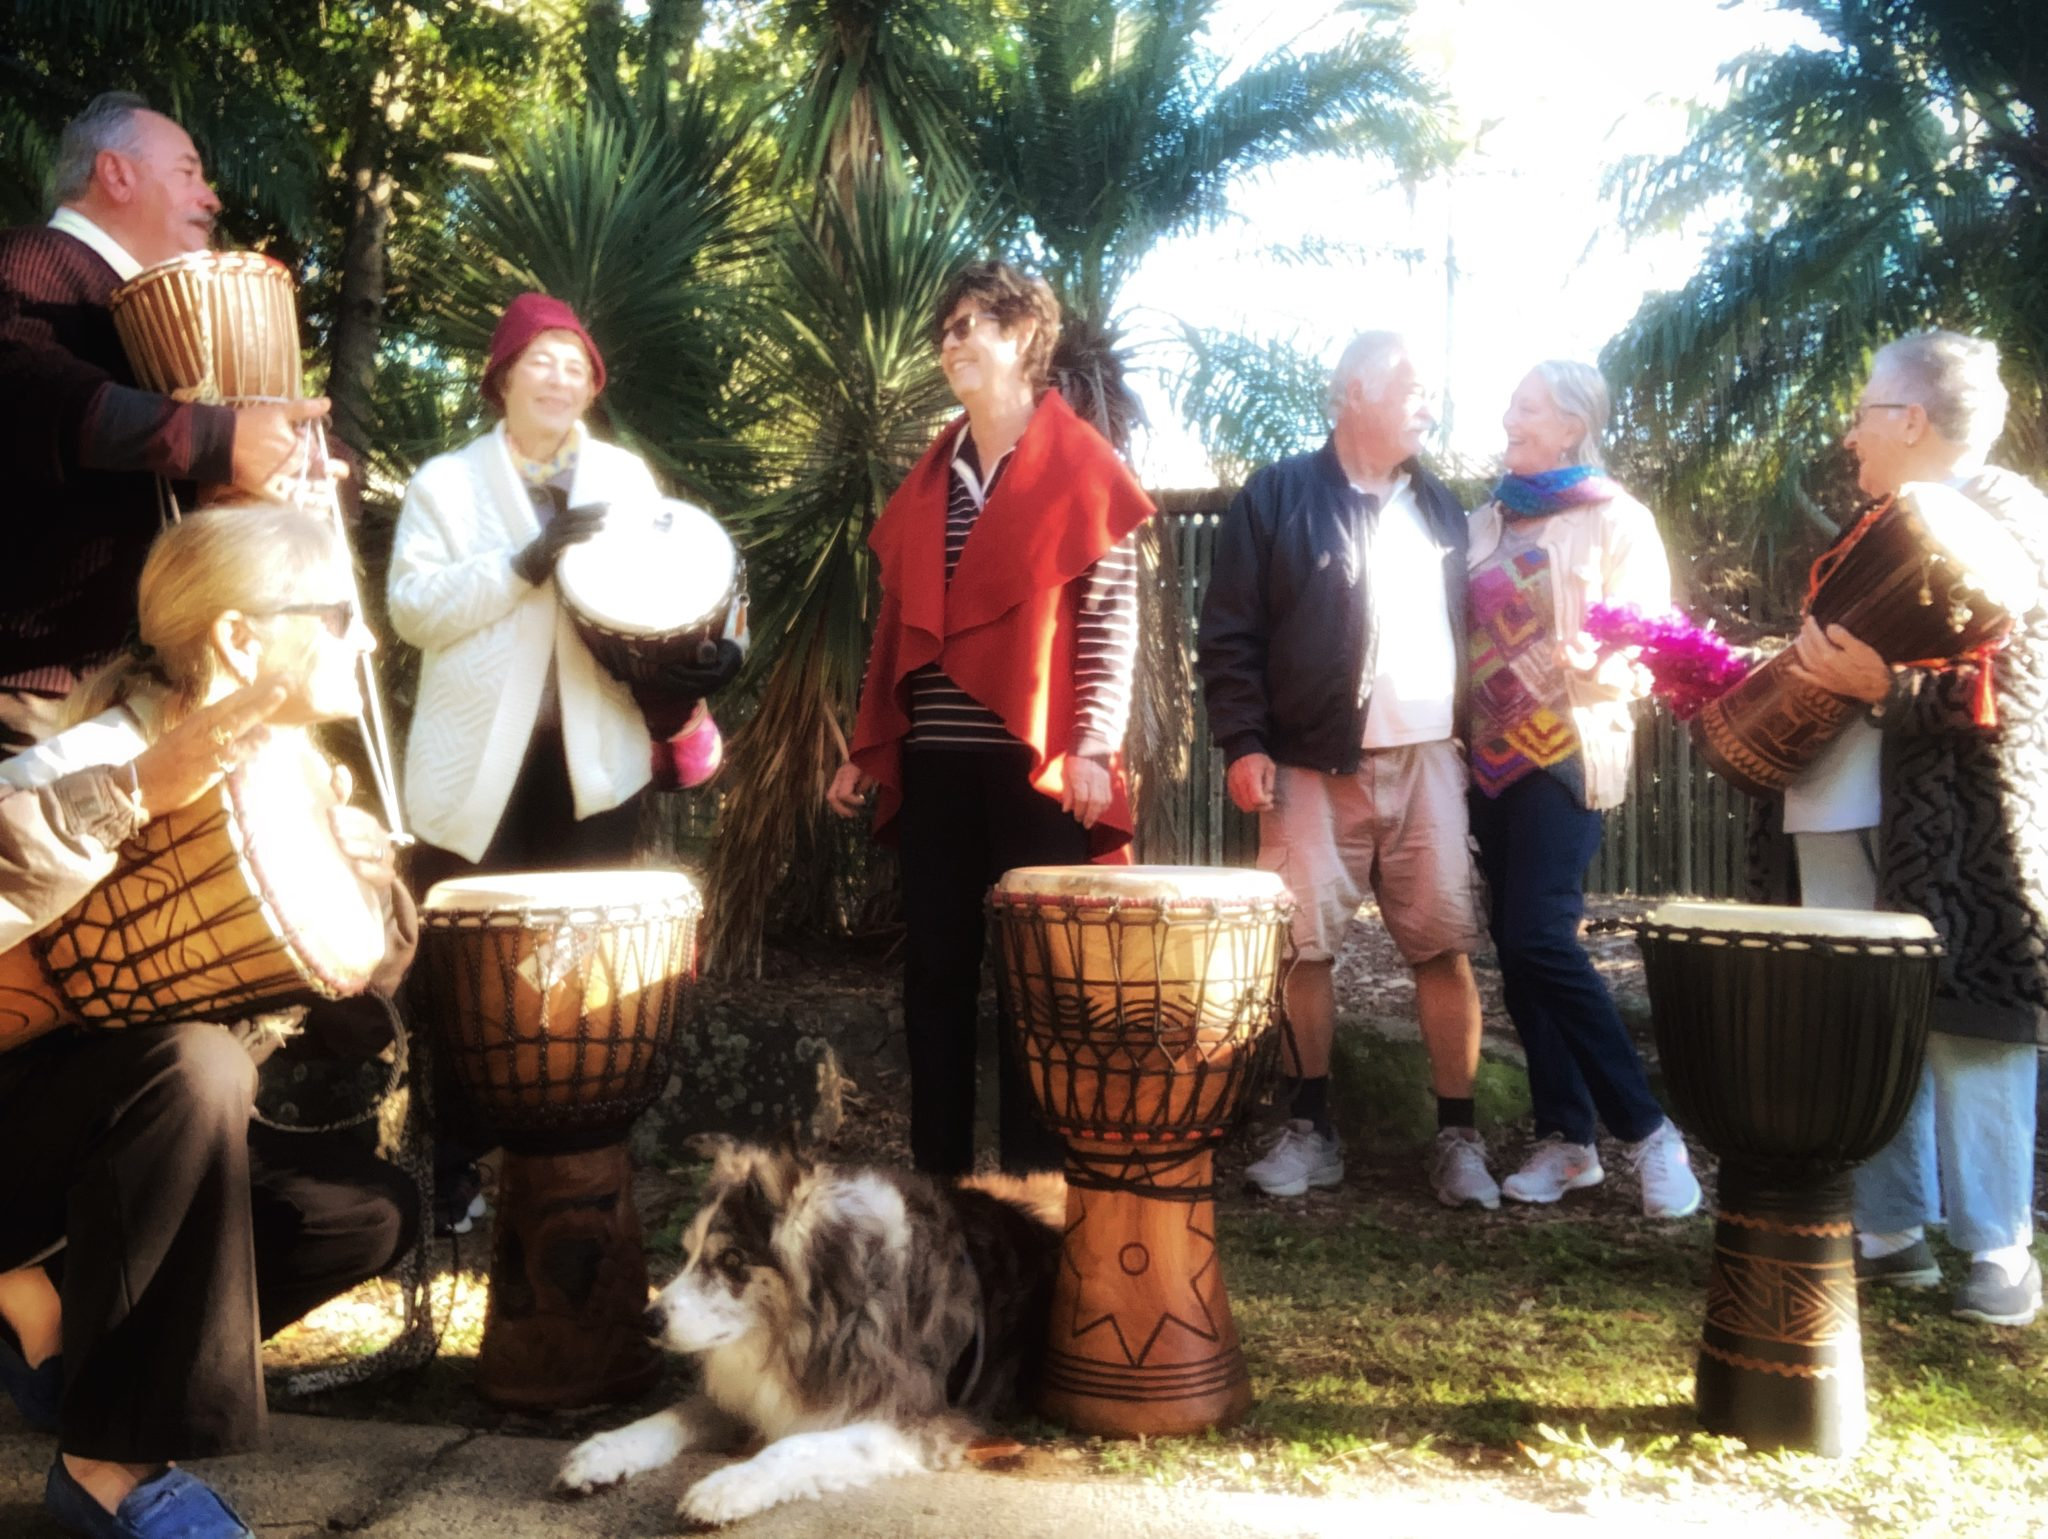 Unity Drummers Inc